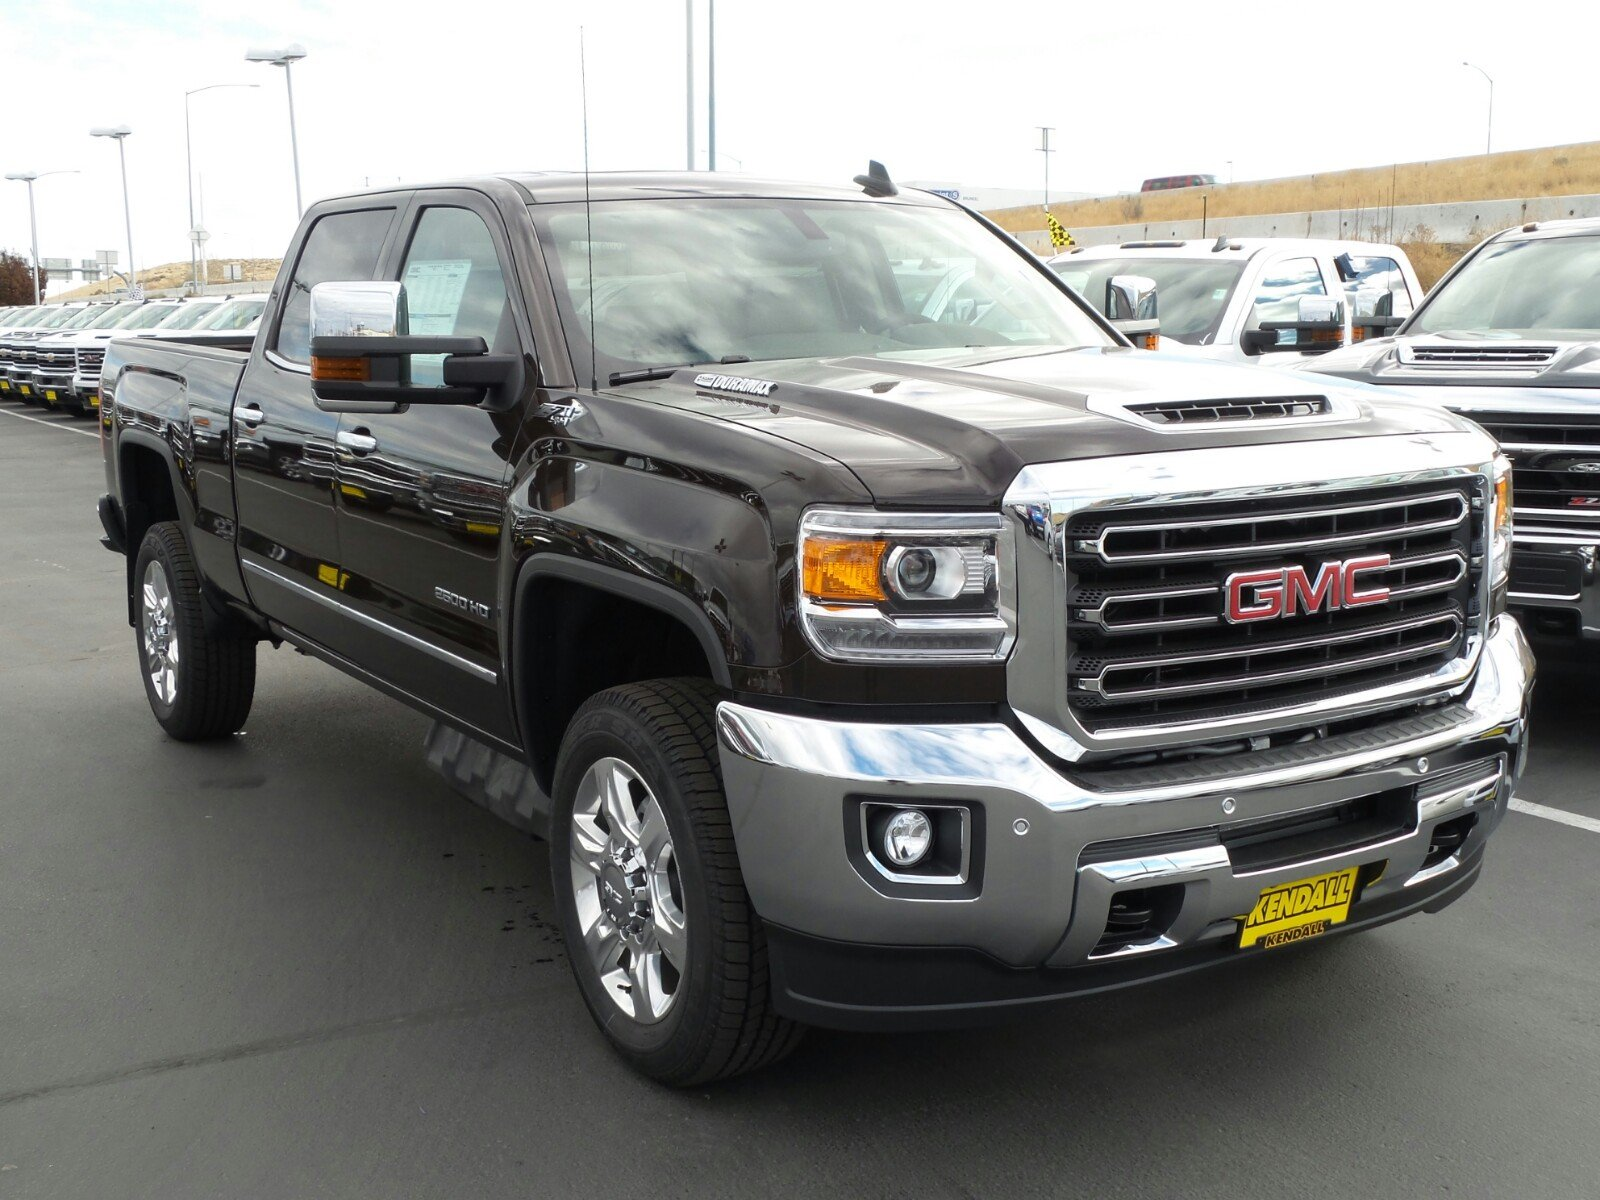 New 2018 Gmc Sierra 2500hd Slt 4wd In Nampa D480281 Kendall At